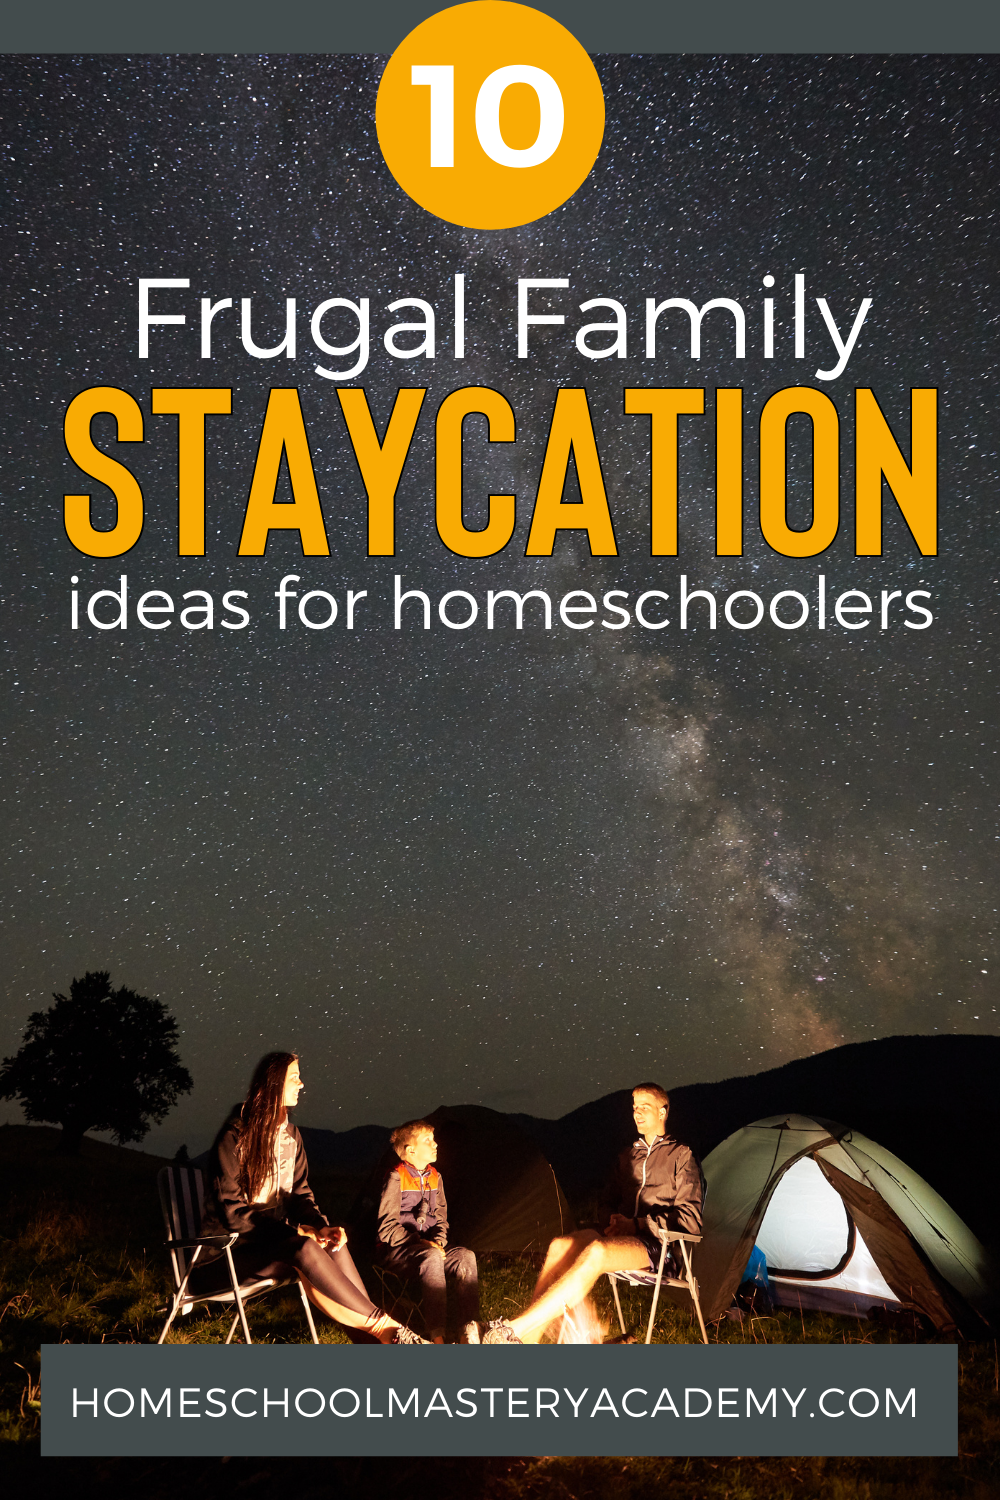 Family Staycation Ideas For Homeschoolers